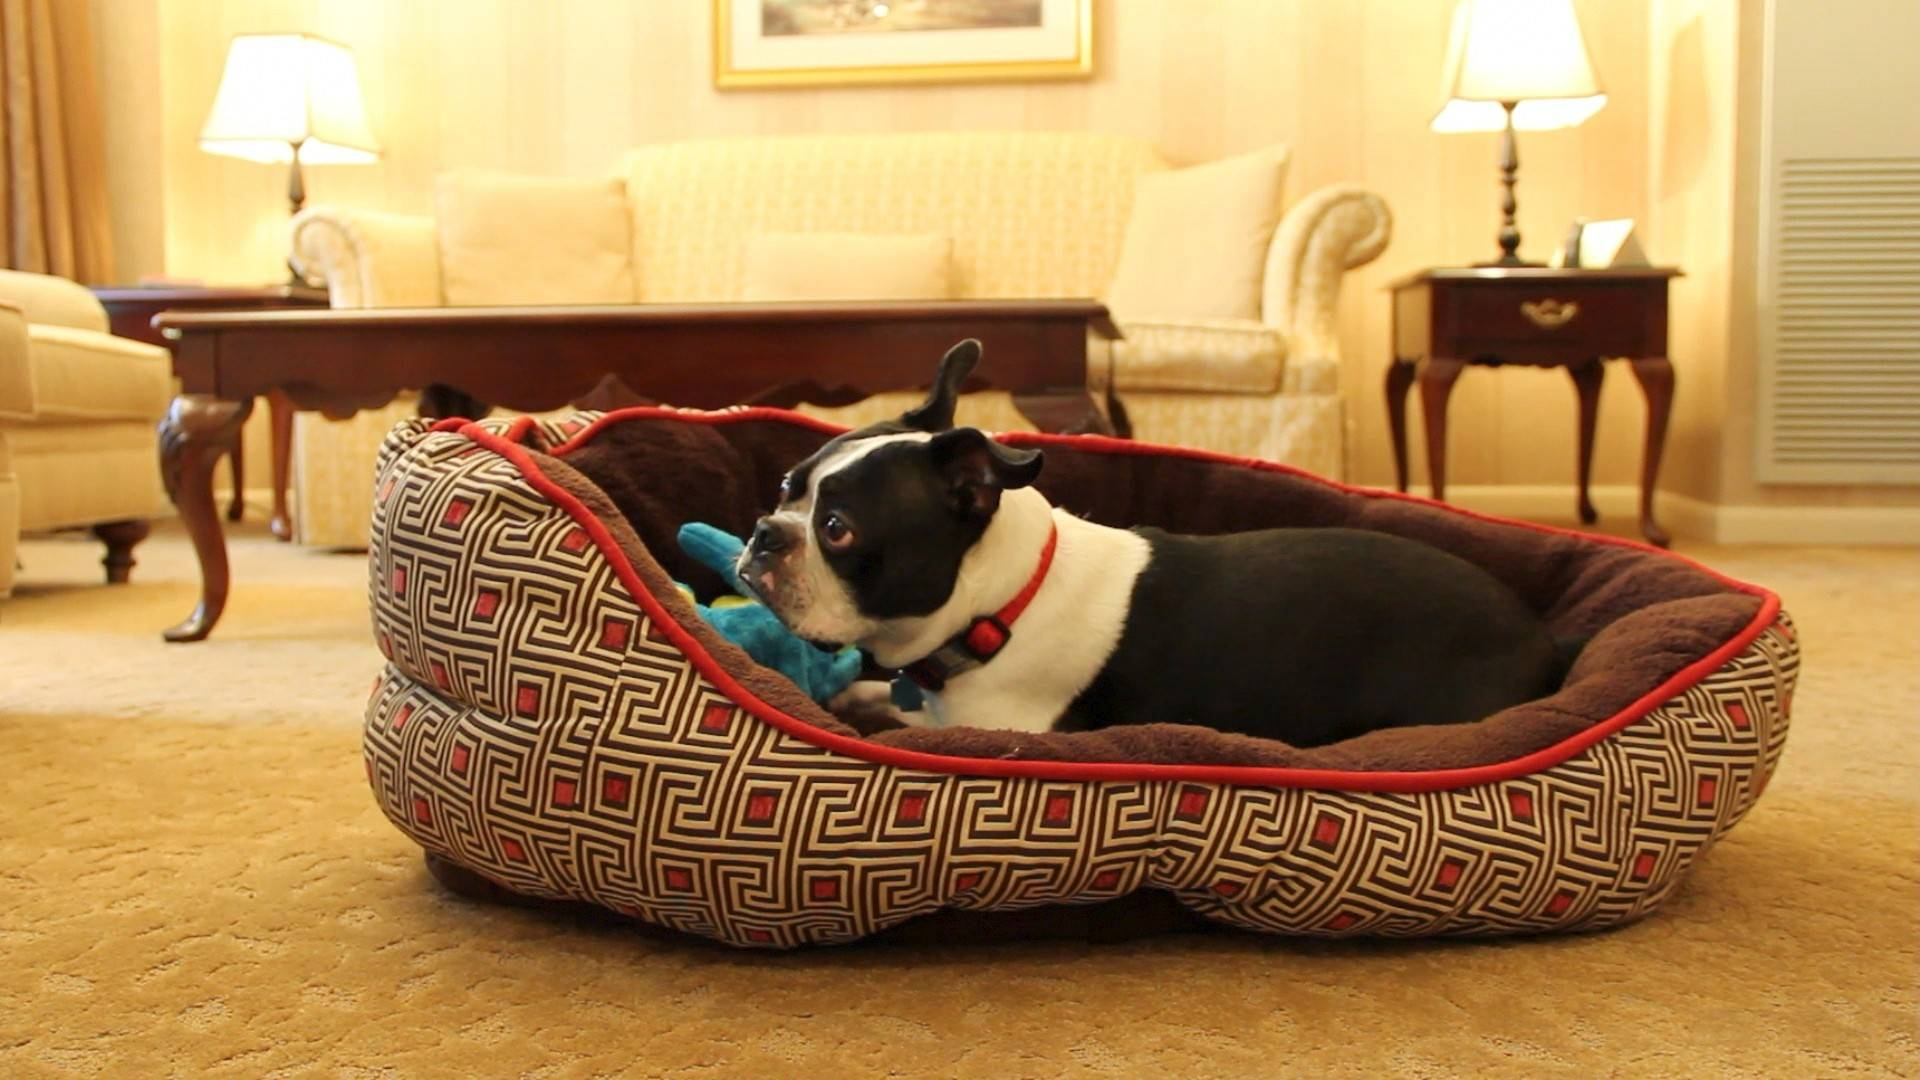 Treat your dog to a day and night in Chicago with the Talbott Hotel's dog-friendly package.